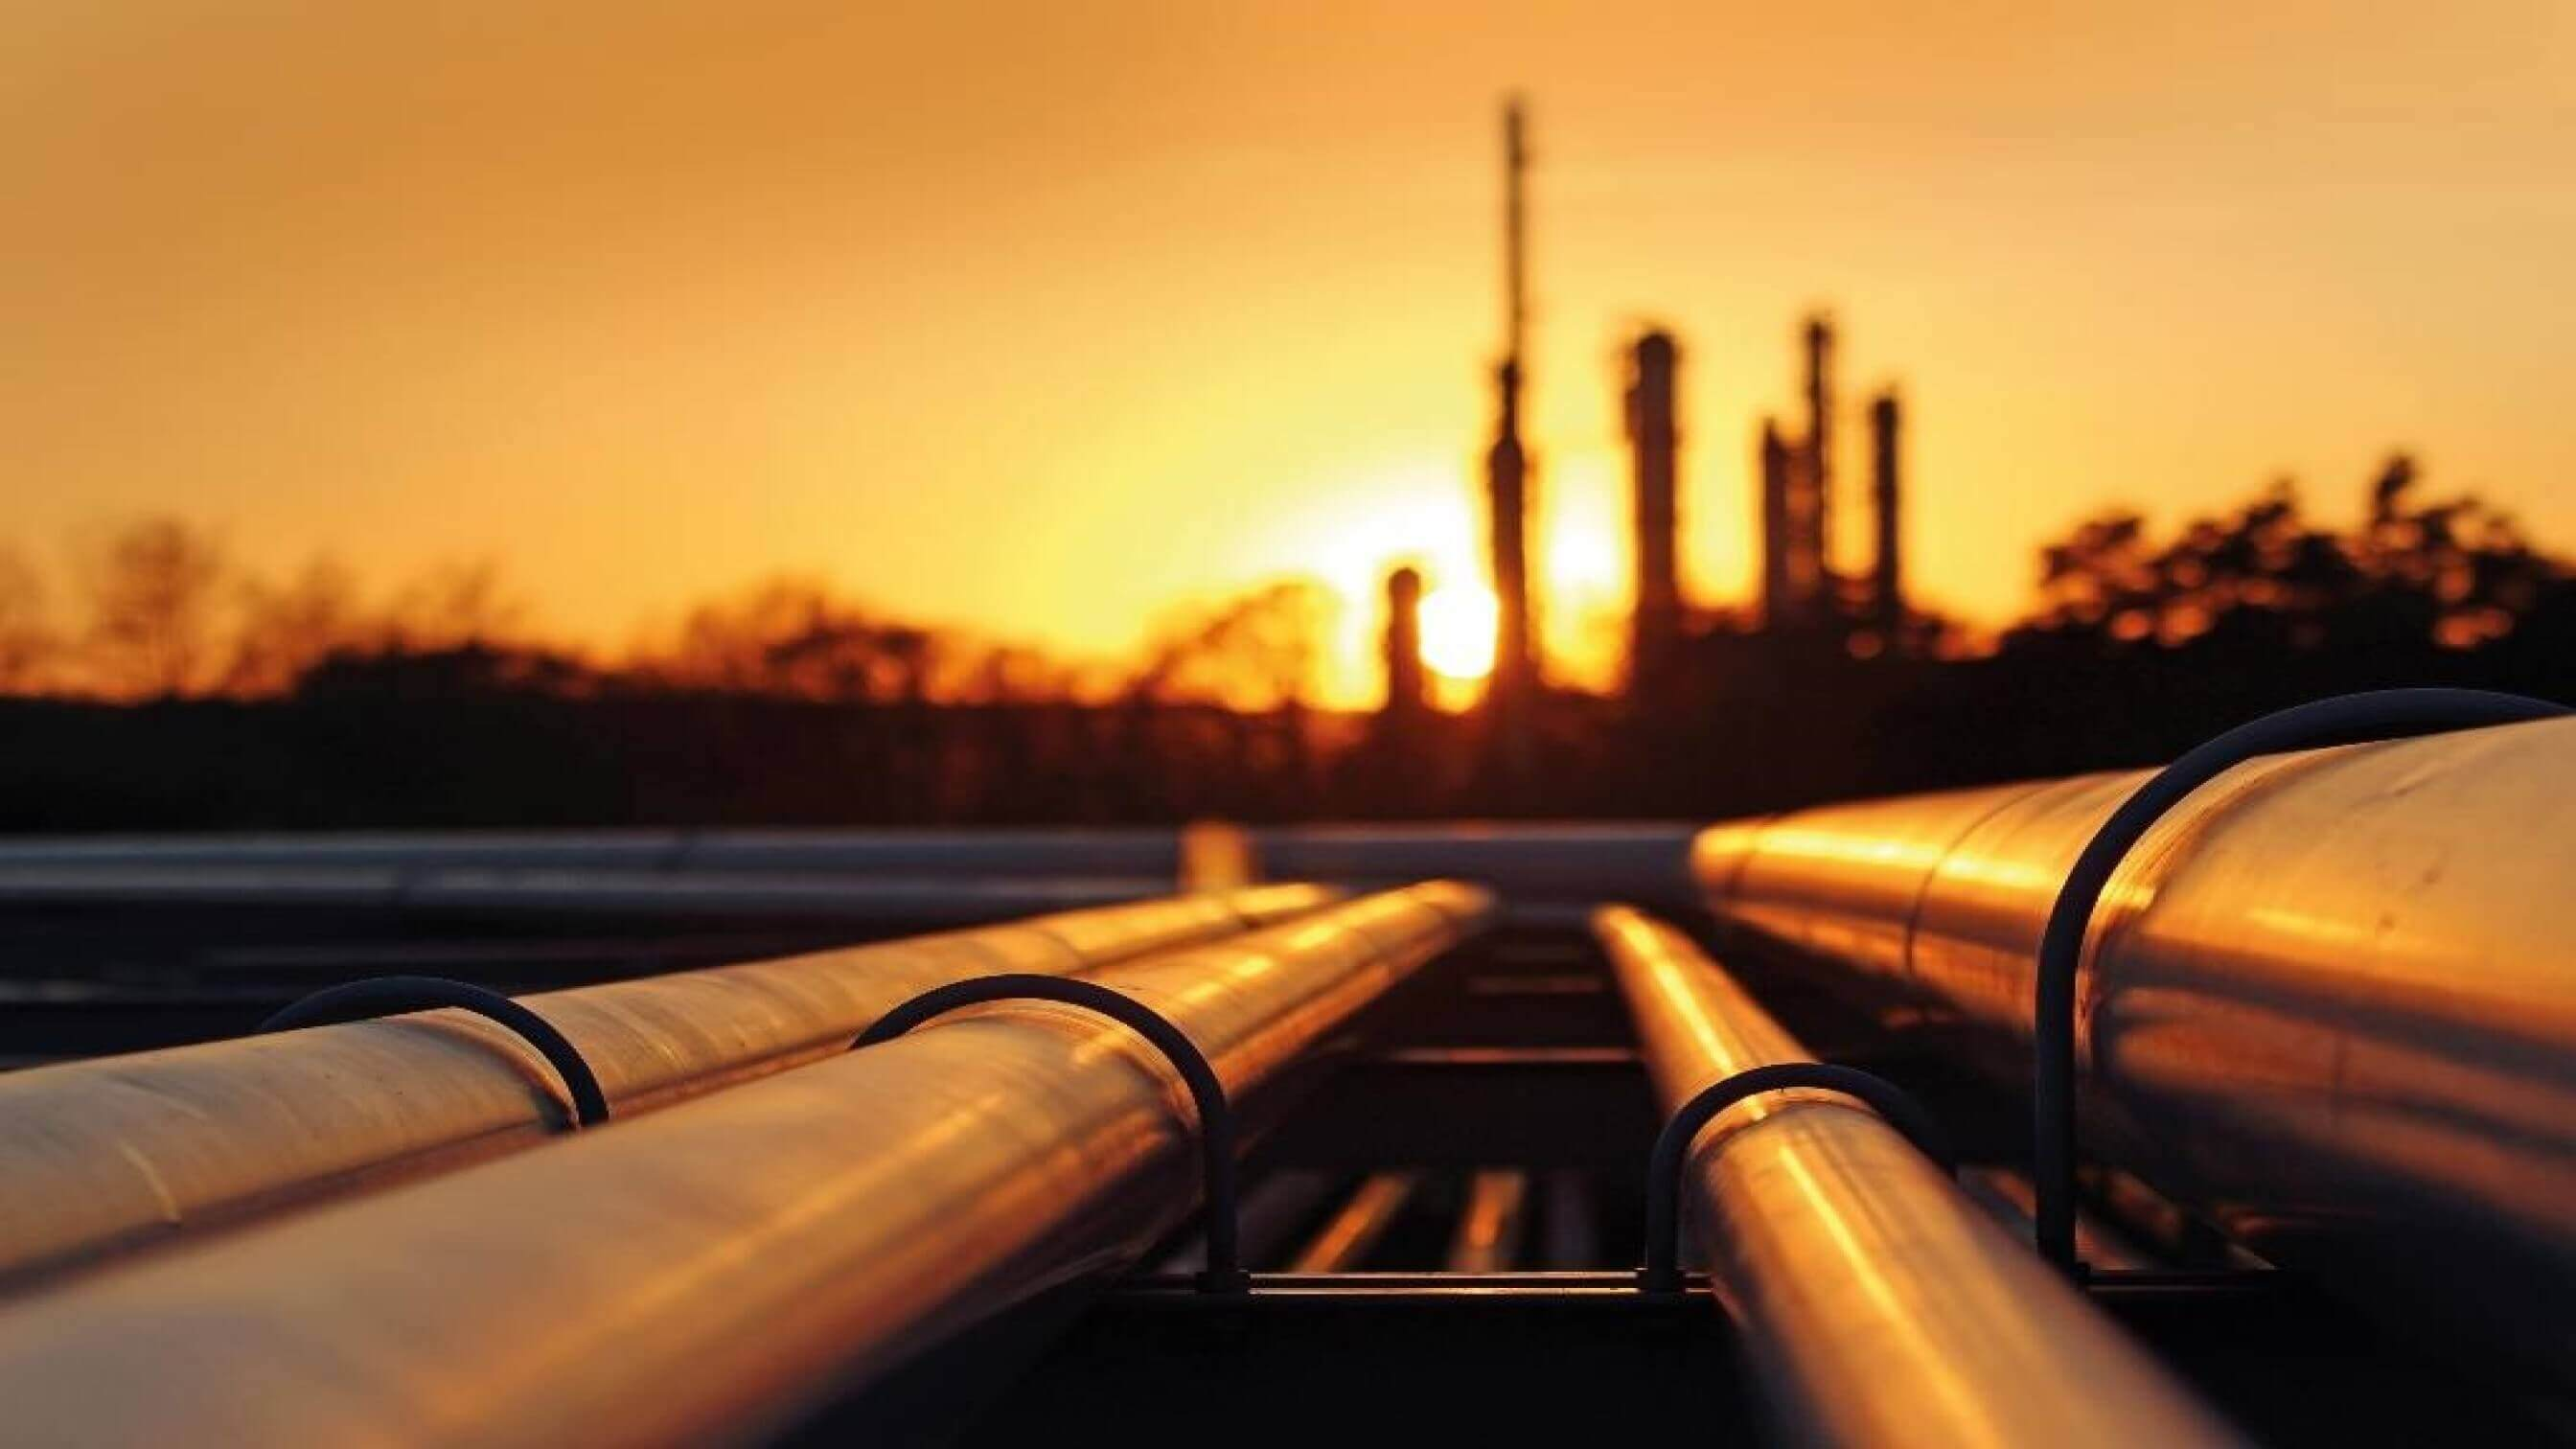 Refinery pipes at sunset